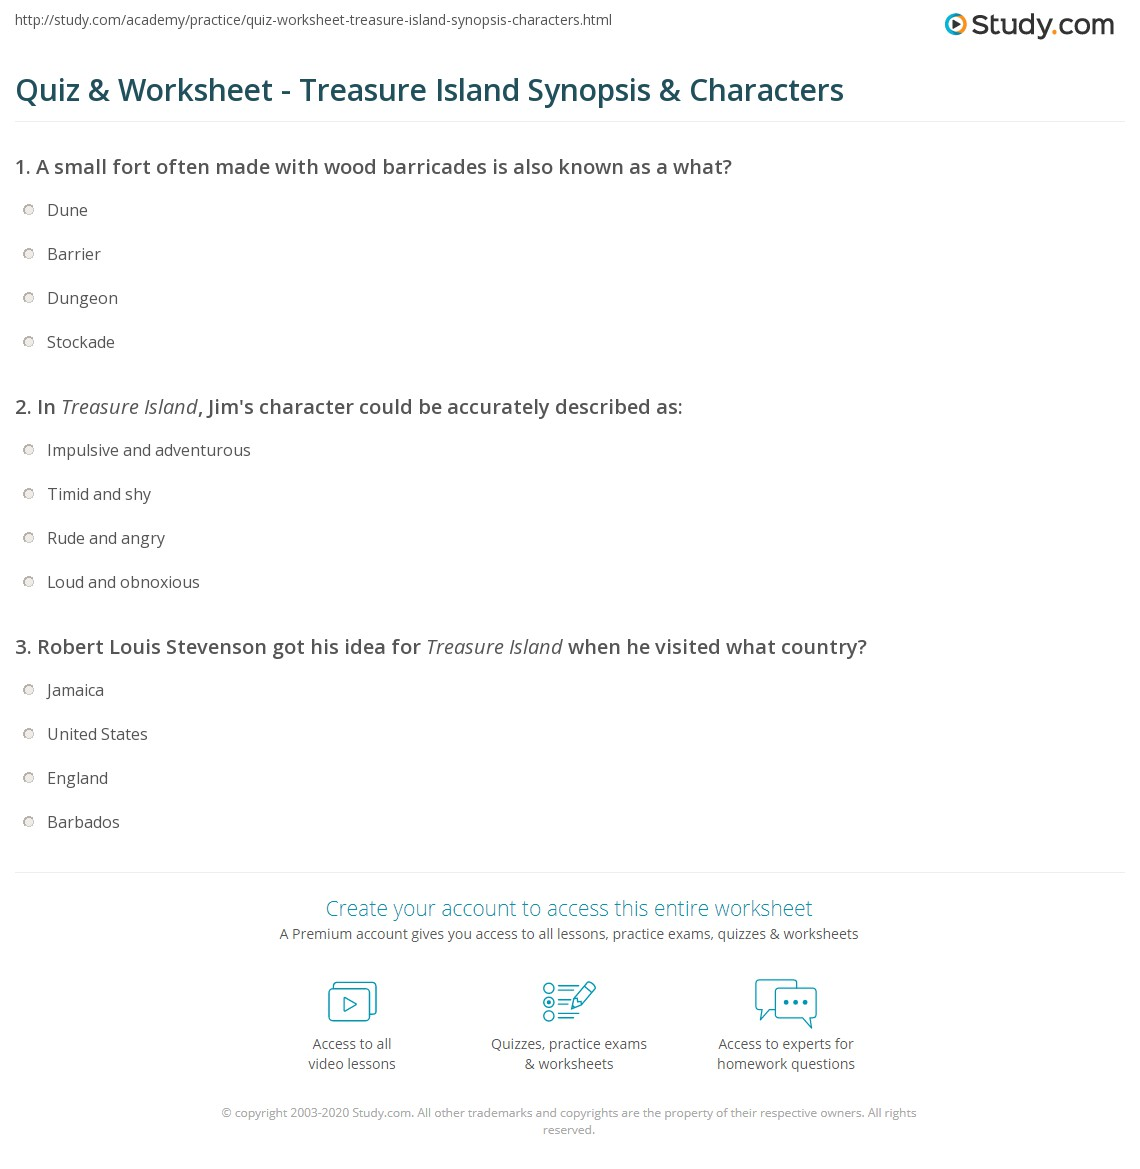 Treasure Island Worksheets - resultinfos